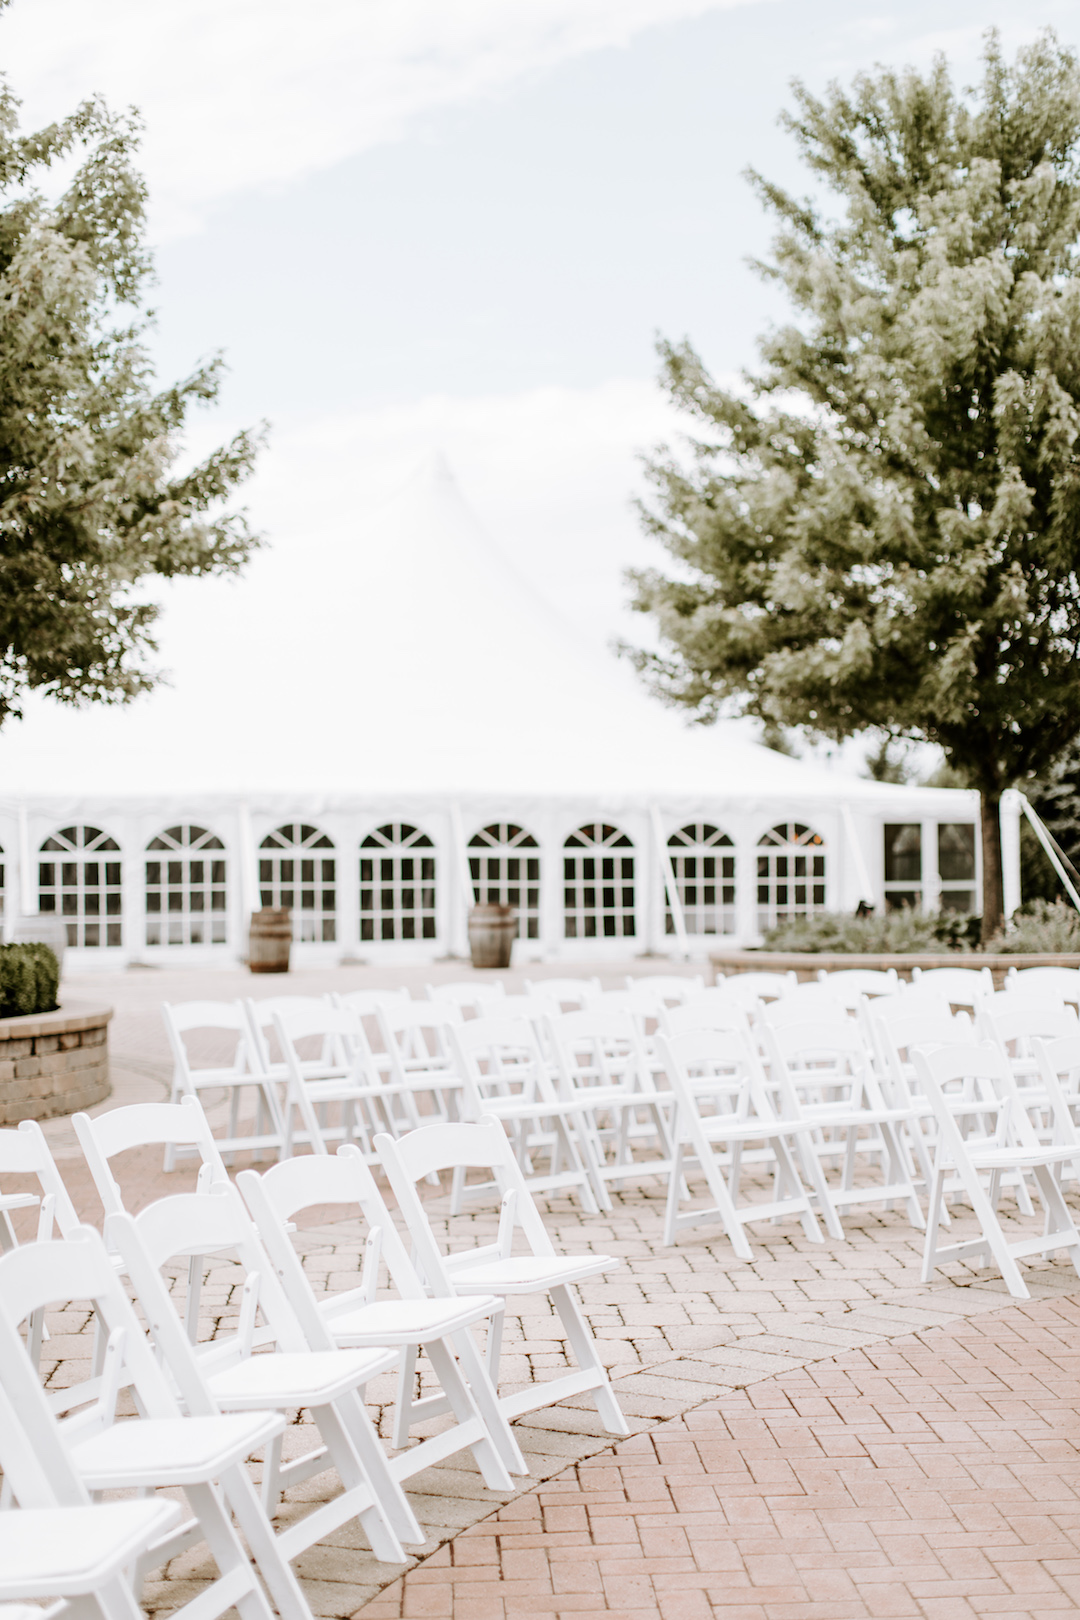 Outdoor wedding ceremony layout: Charming CD&ME outdoor wedding captured by Eiza Photography featured on CHI thee WED. Find more wedding inspiration at chitheewed.com!